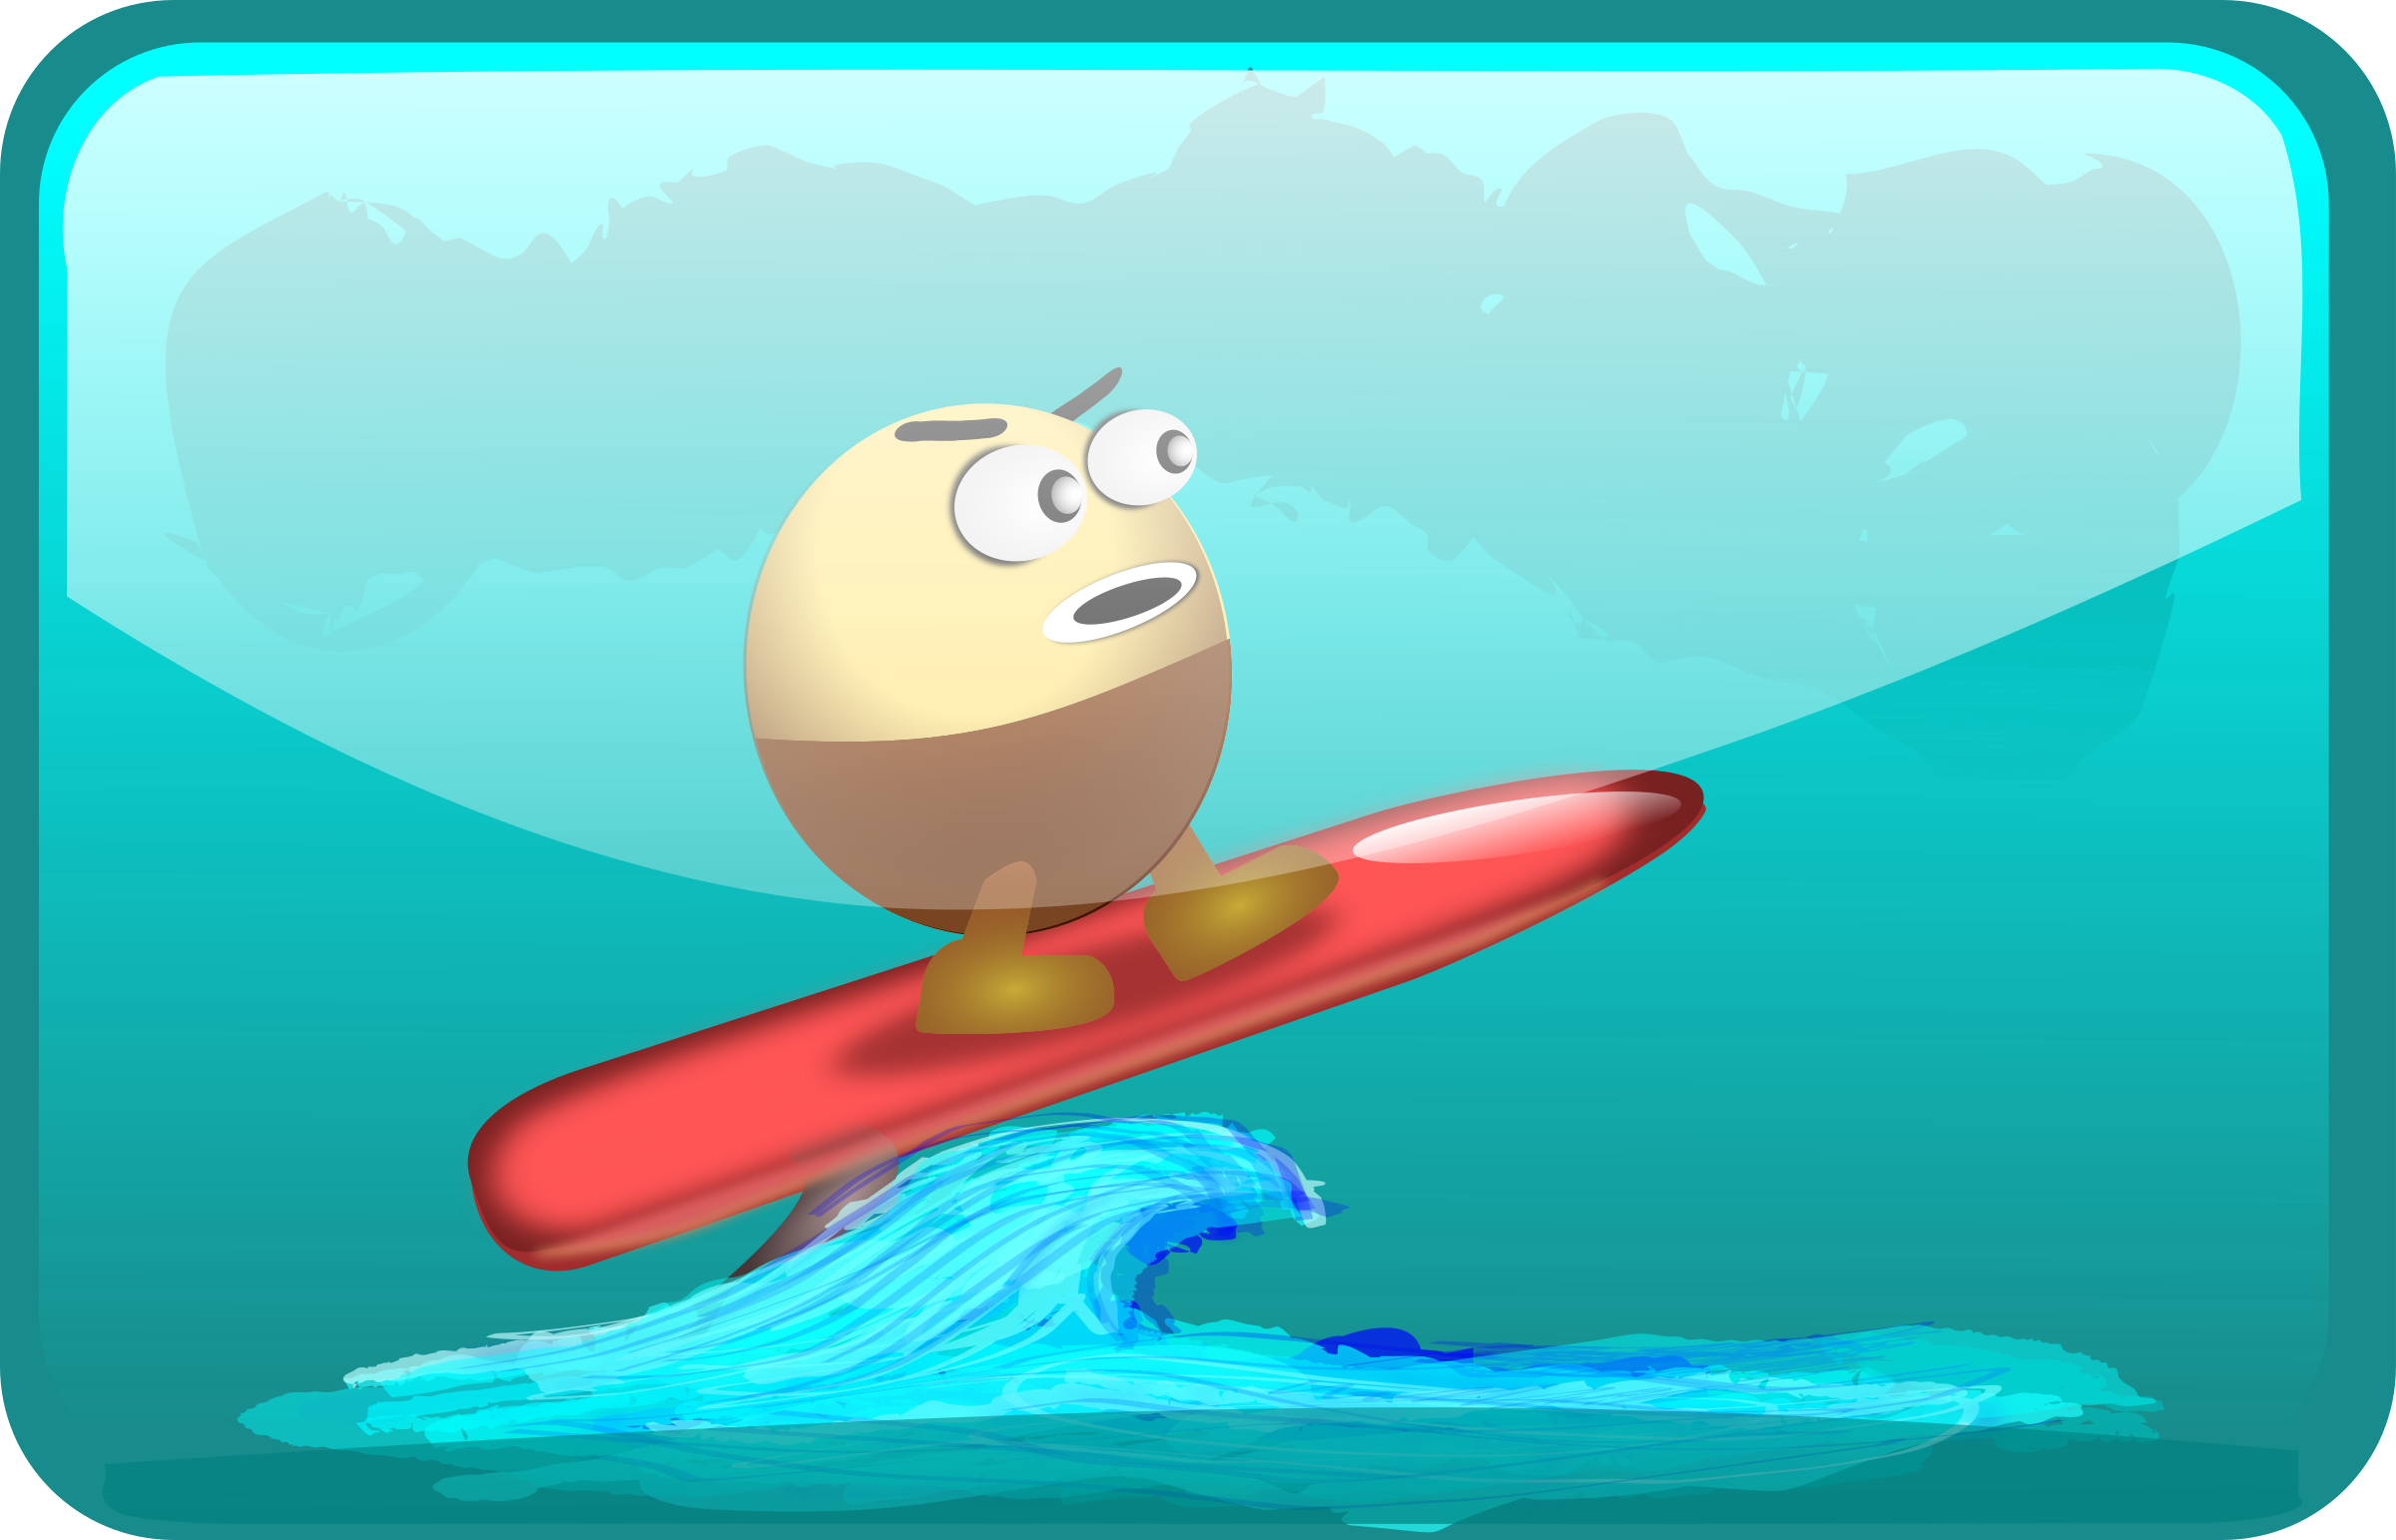 Surfing Egghead by inky2010